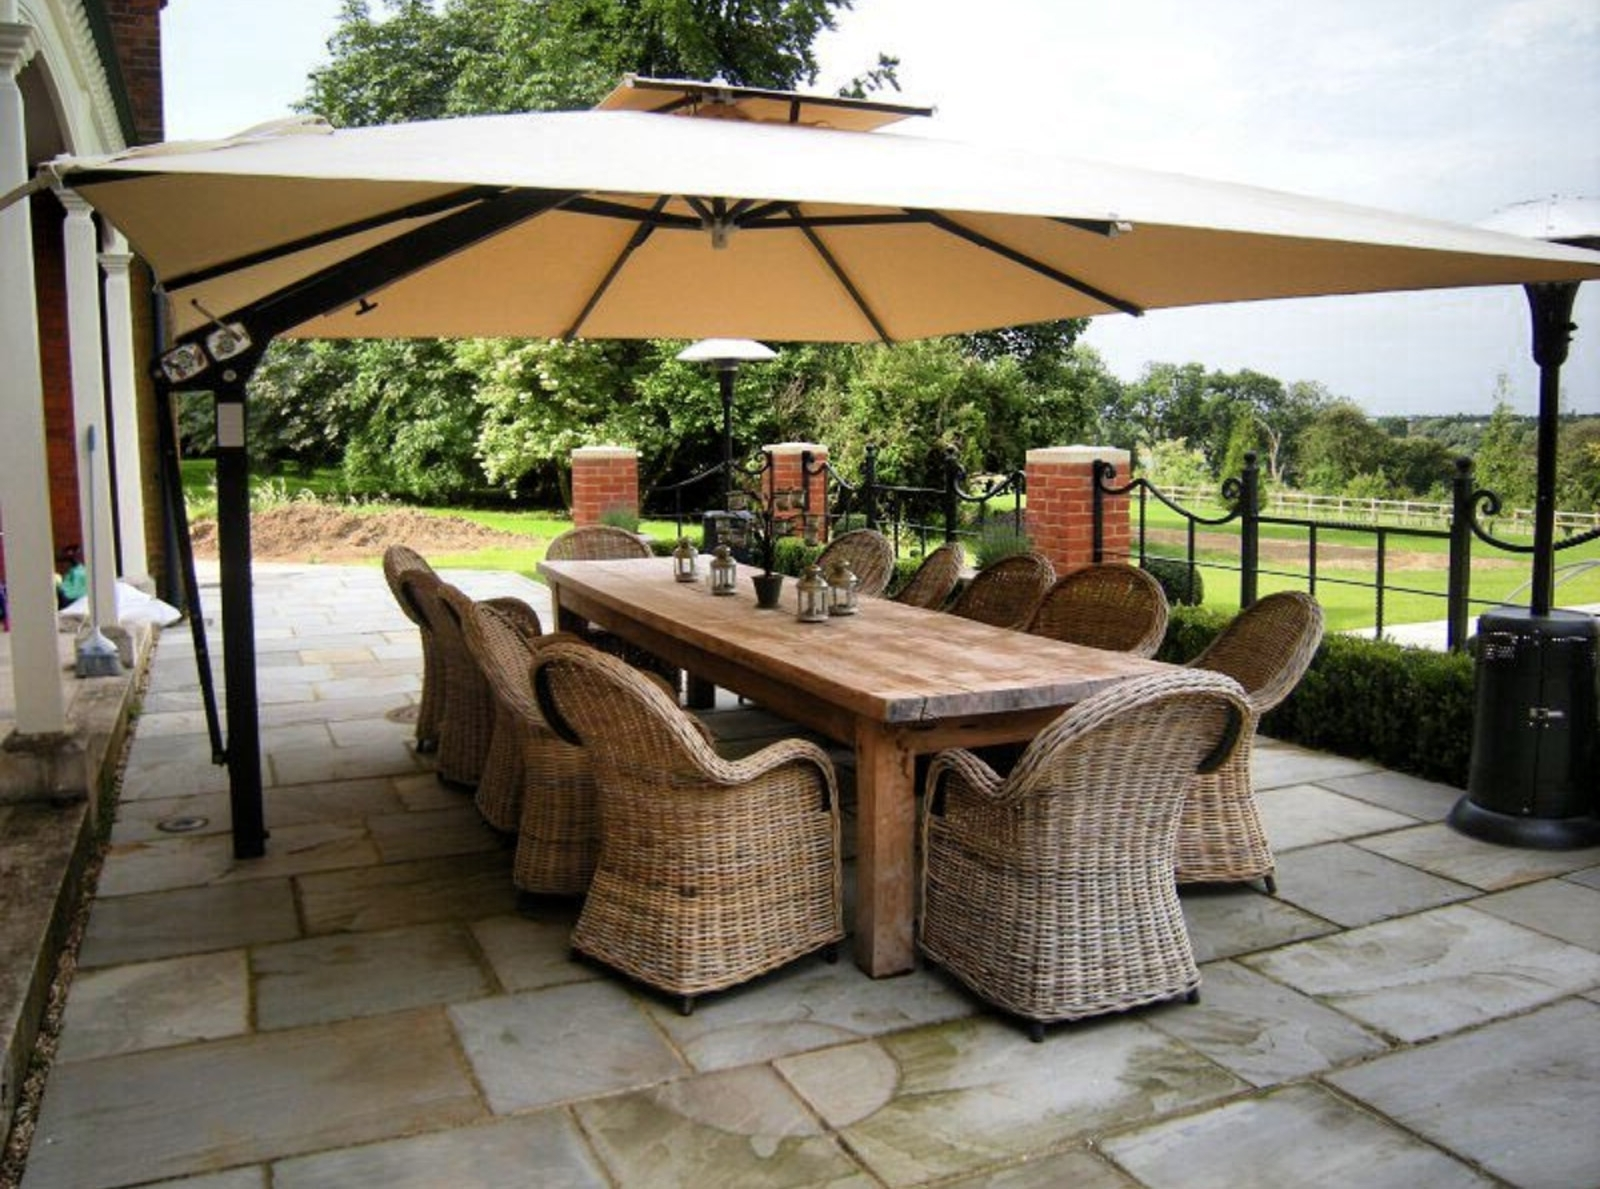 Newest High End Patio Umbrellas Intended For Customer Round Up: 10 High End Patio Umbrella Set Ups That Will (View 8 of 20)